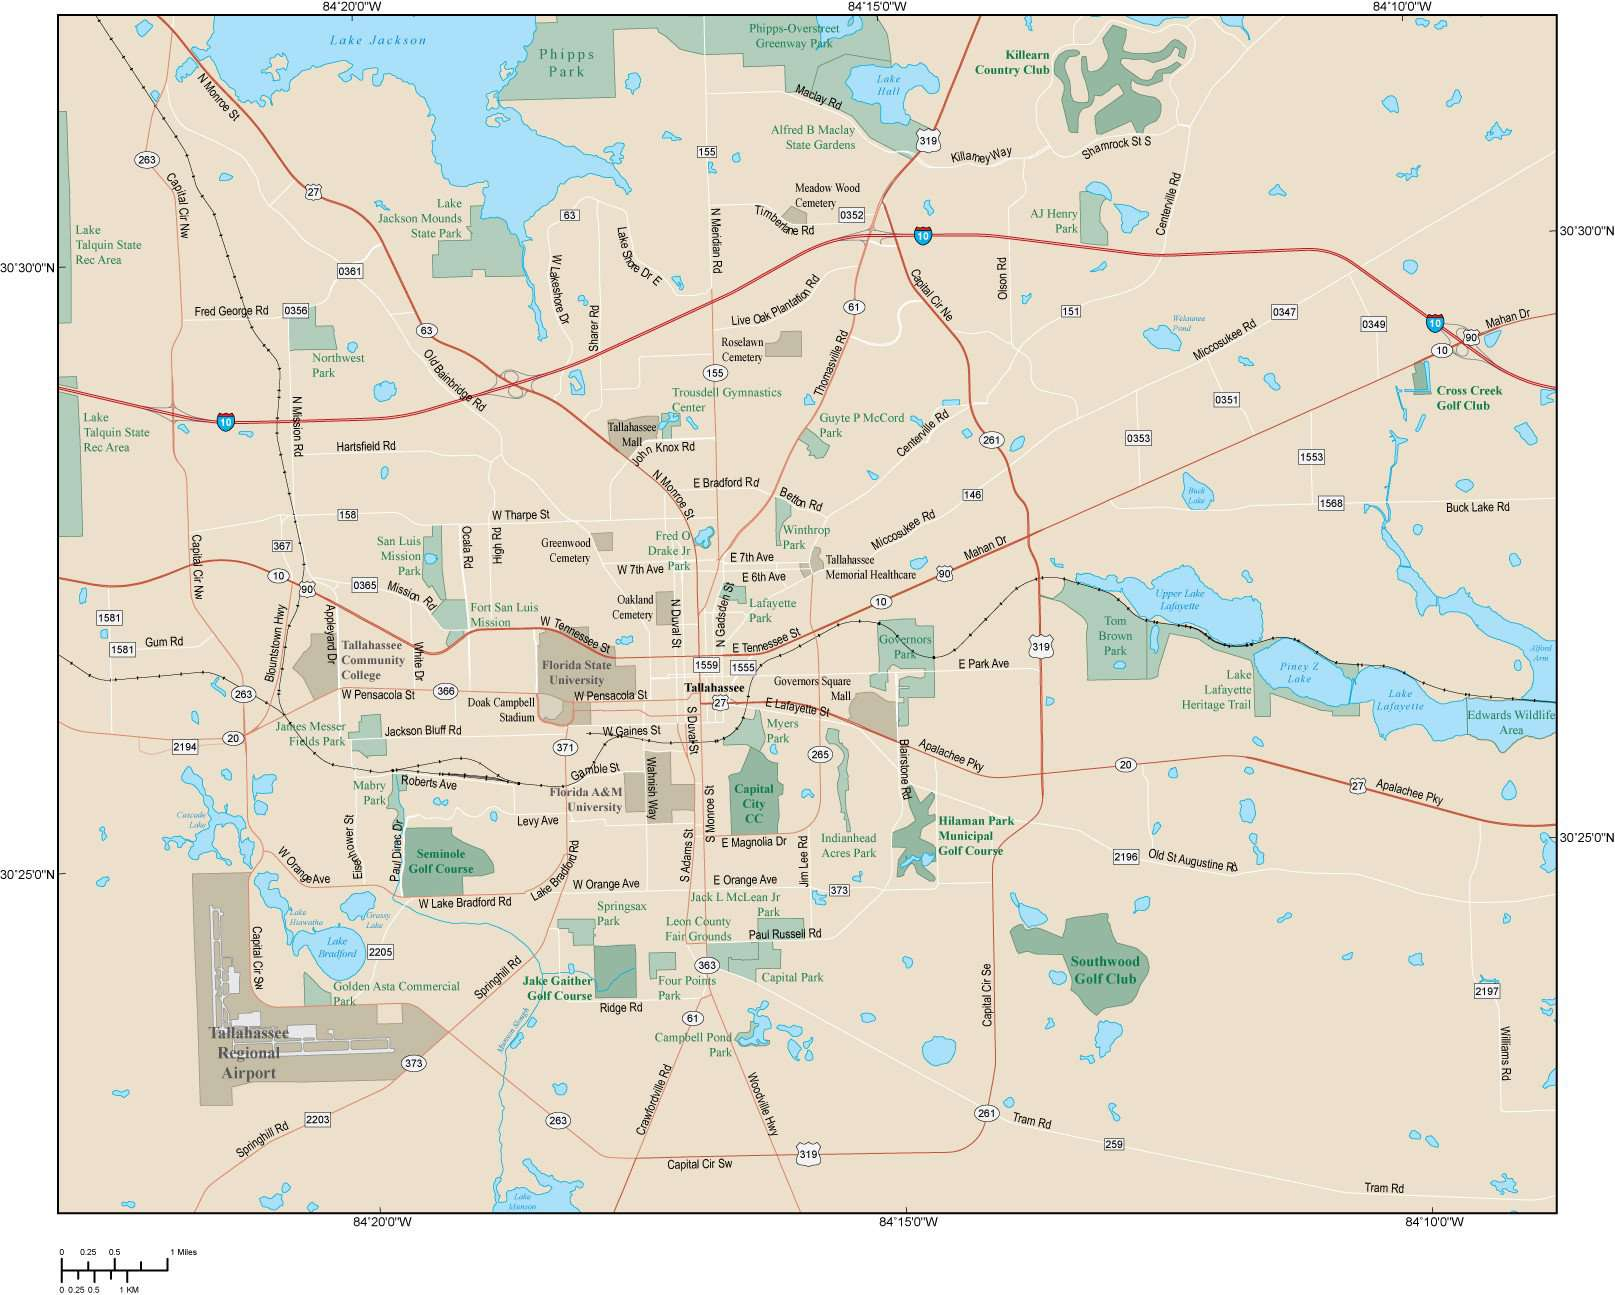 Tallahassee FL Map - Metro Area - 154 square miles - with Major Roads